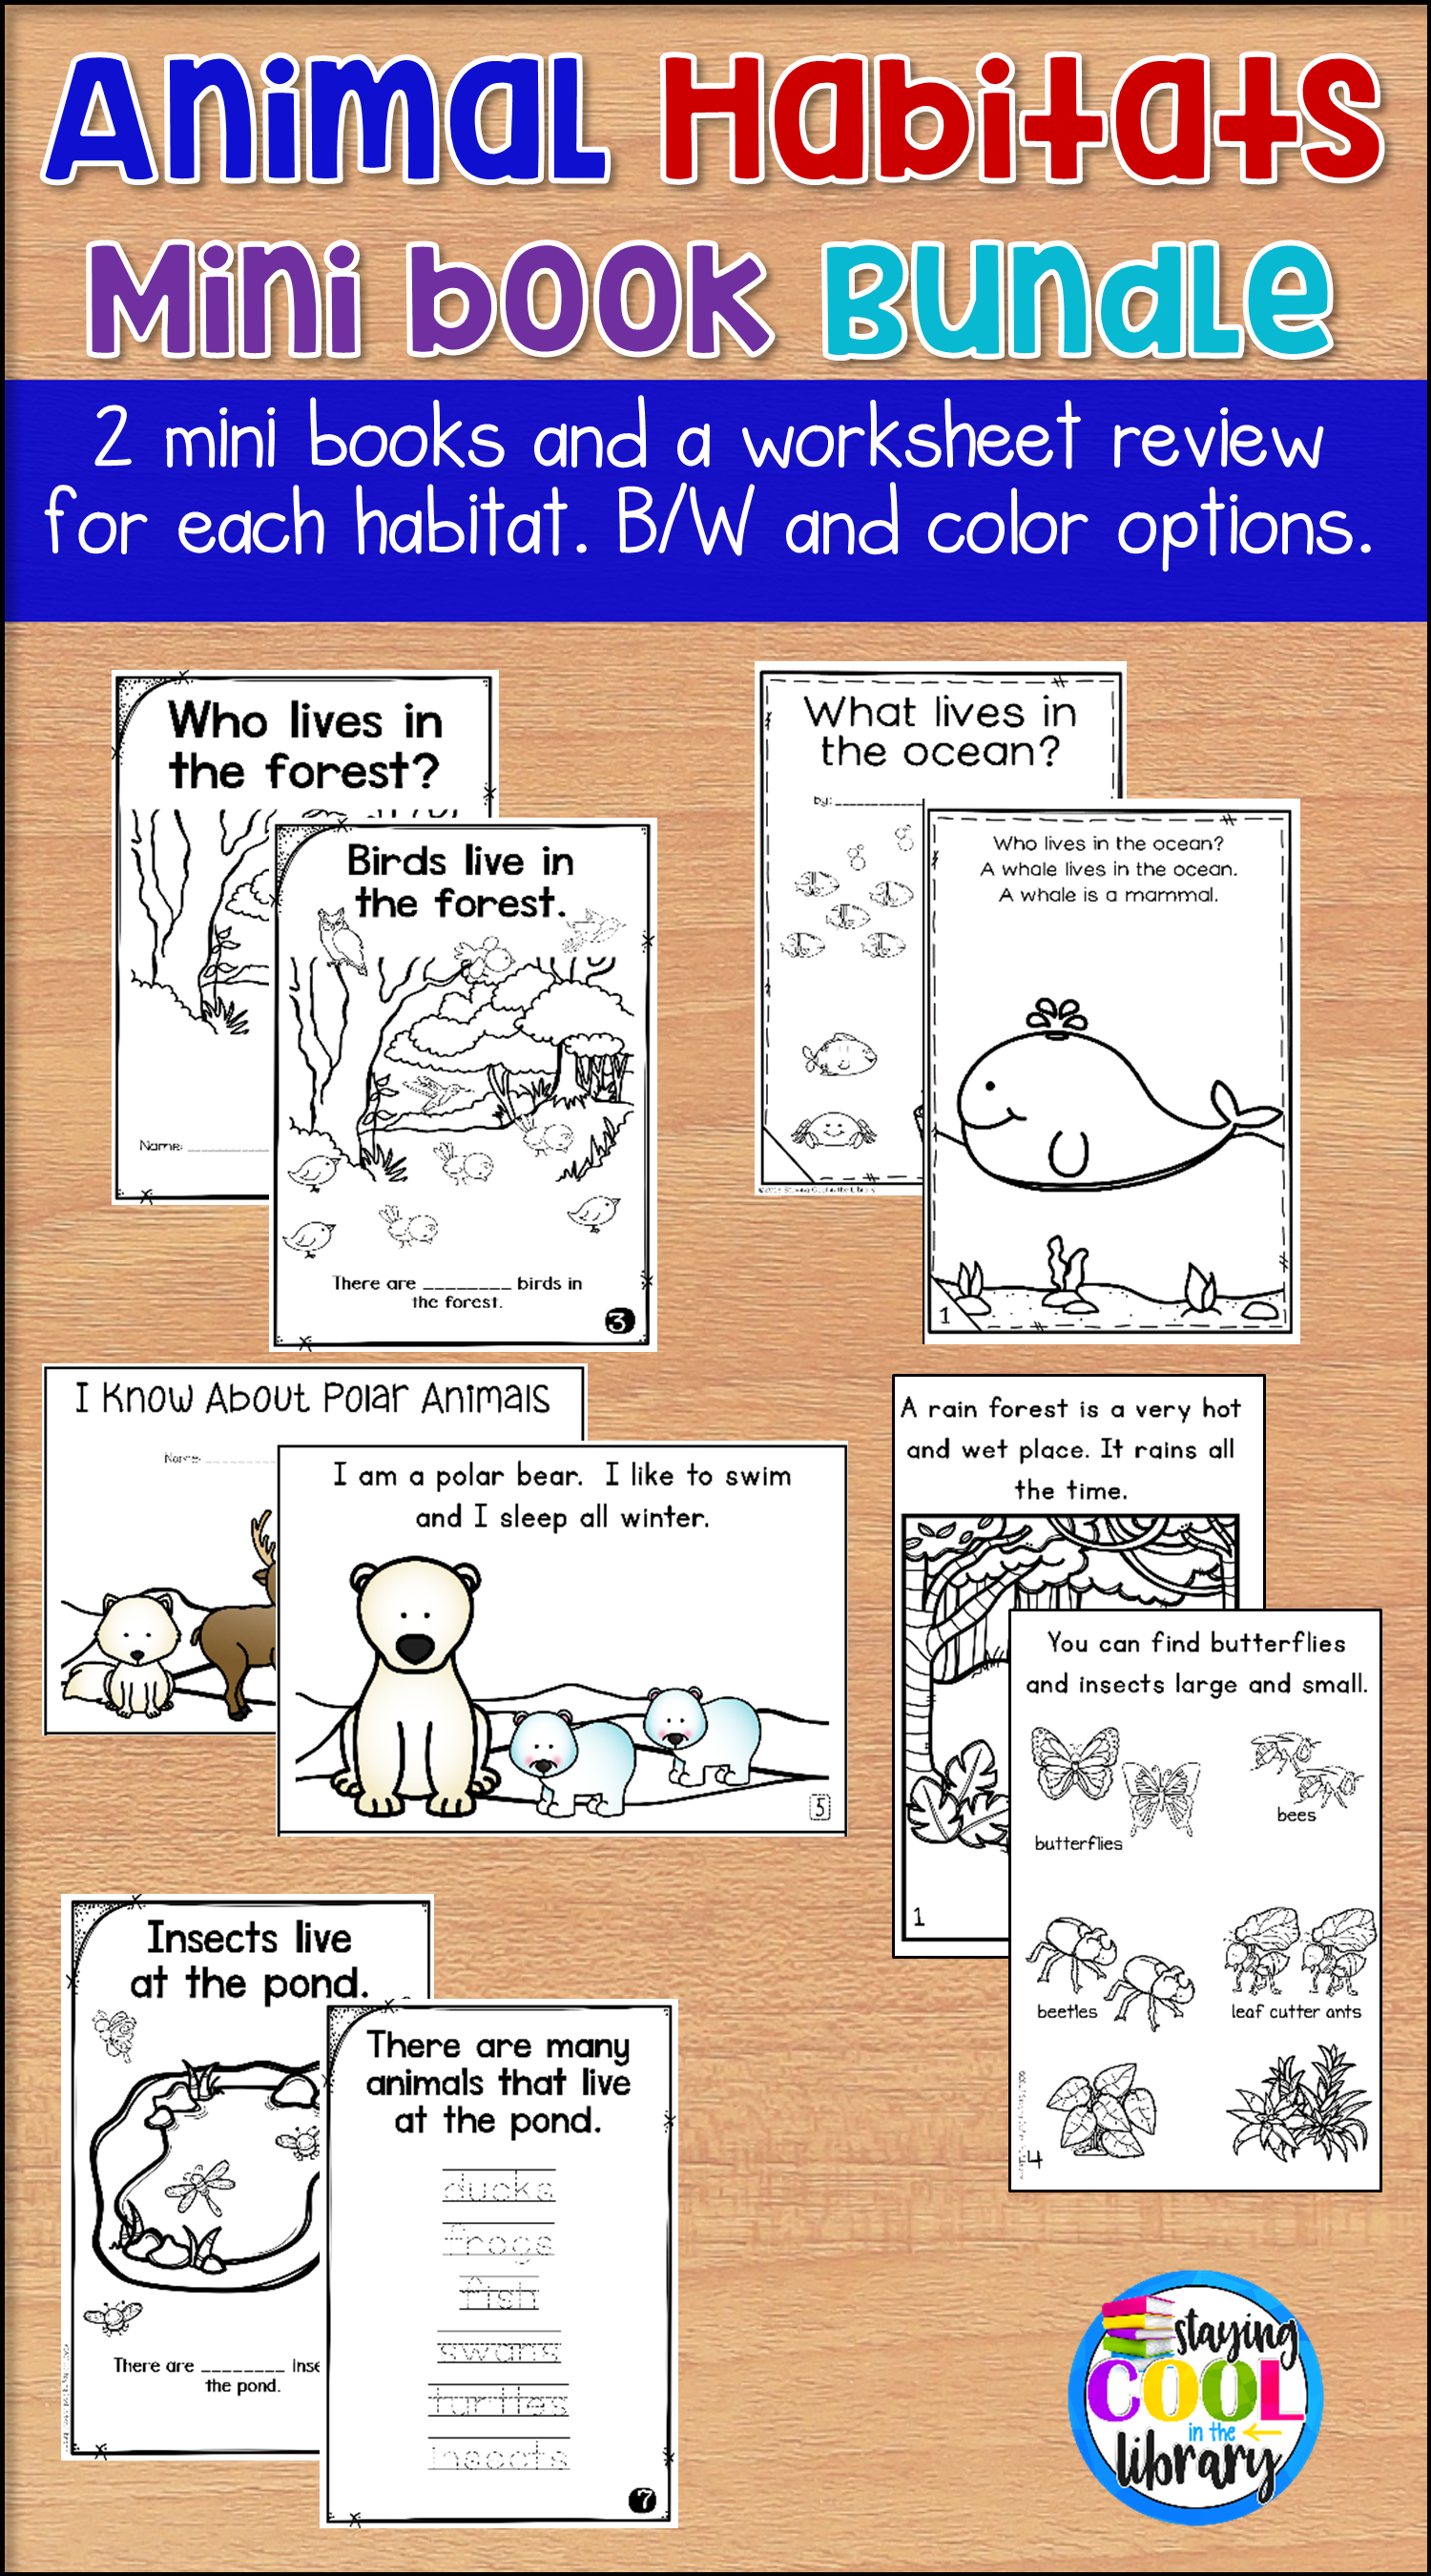 Animal Habitats Mini Books Review 6 Habitats With These Printable Readers And Review Worksheets Habitats Included Pond Mini Books Animal Habitats Habitats [ 2700 x 1500 Pixel ]